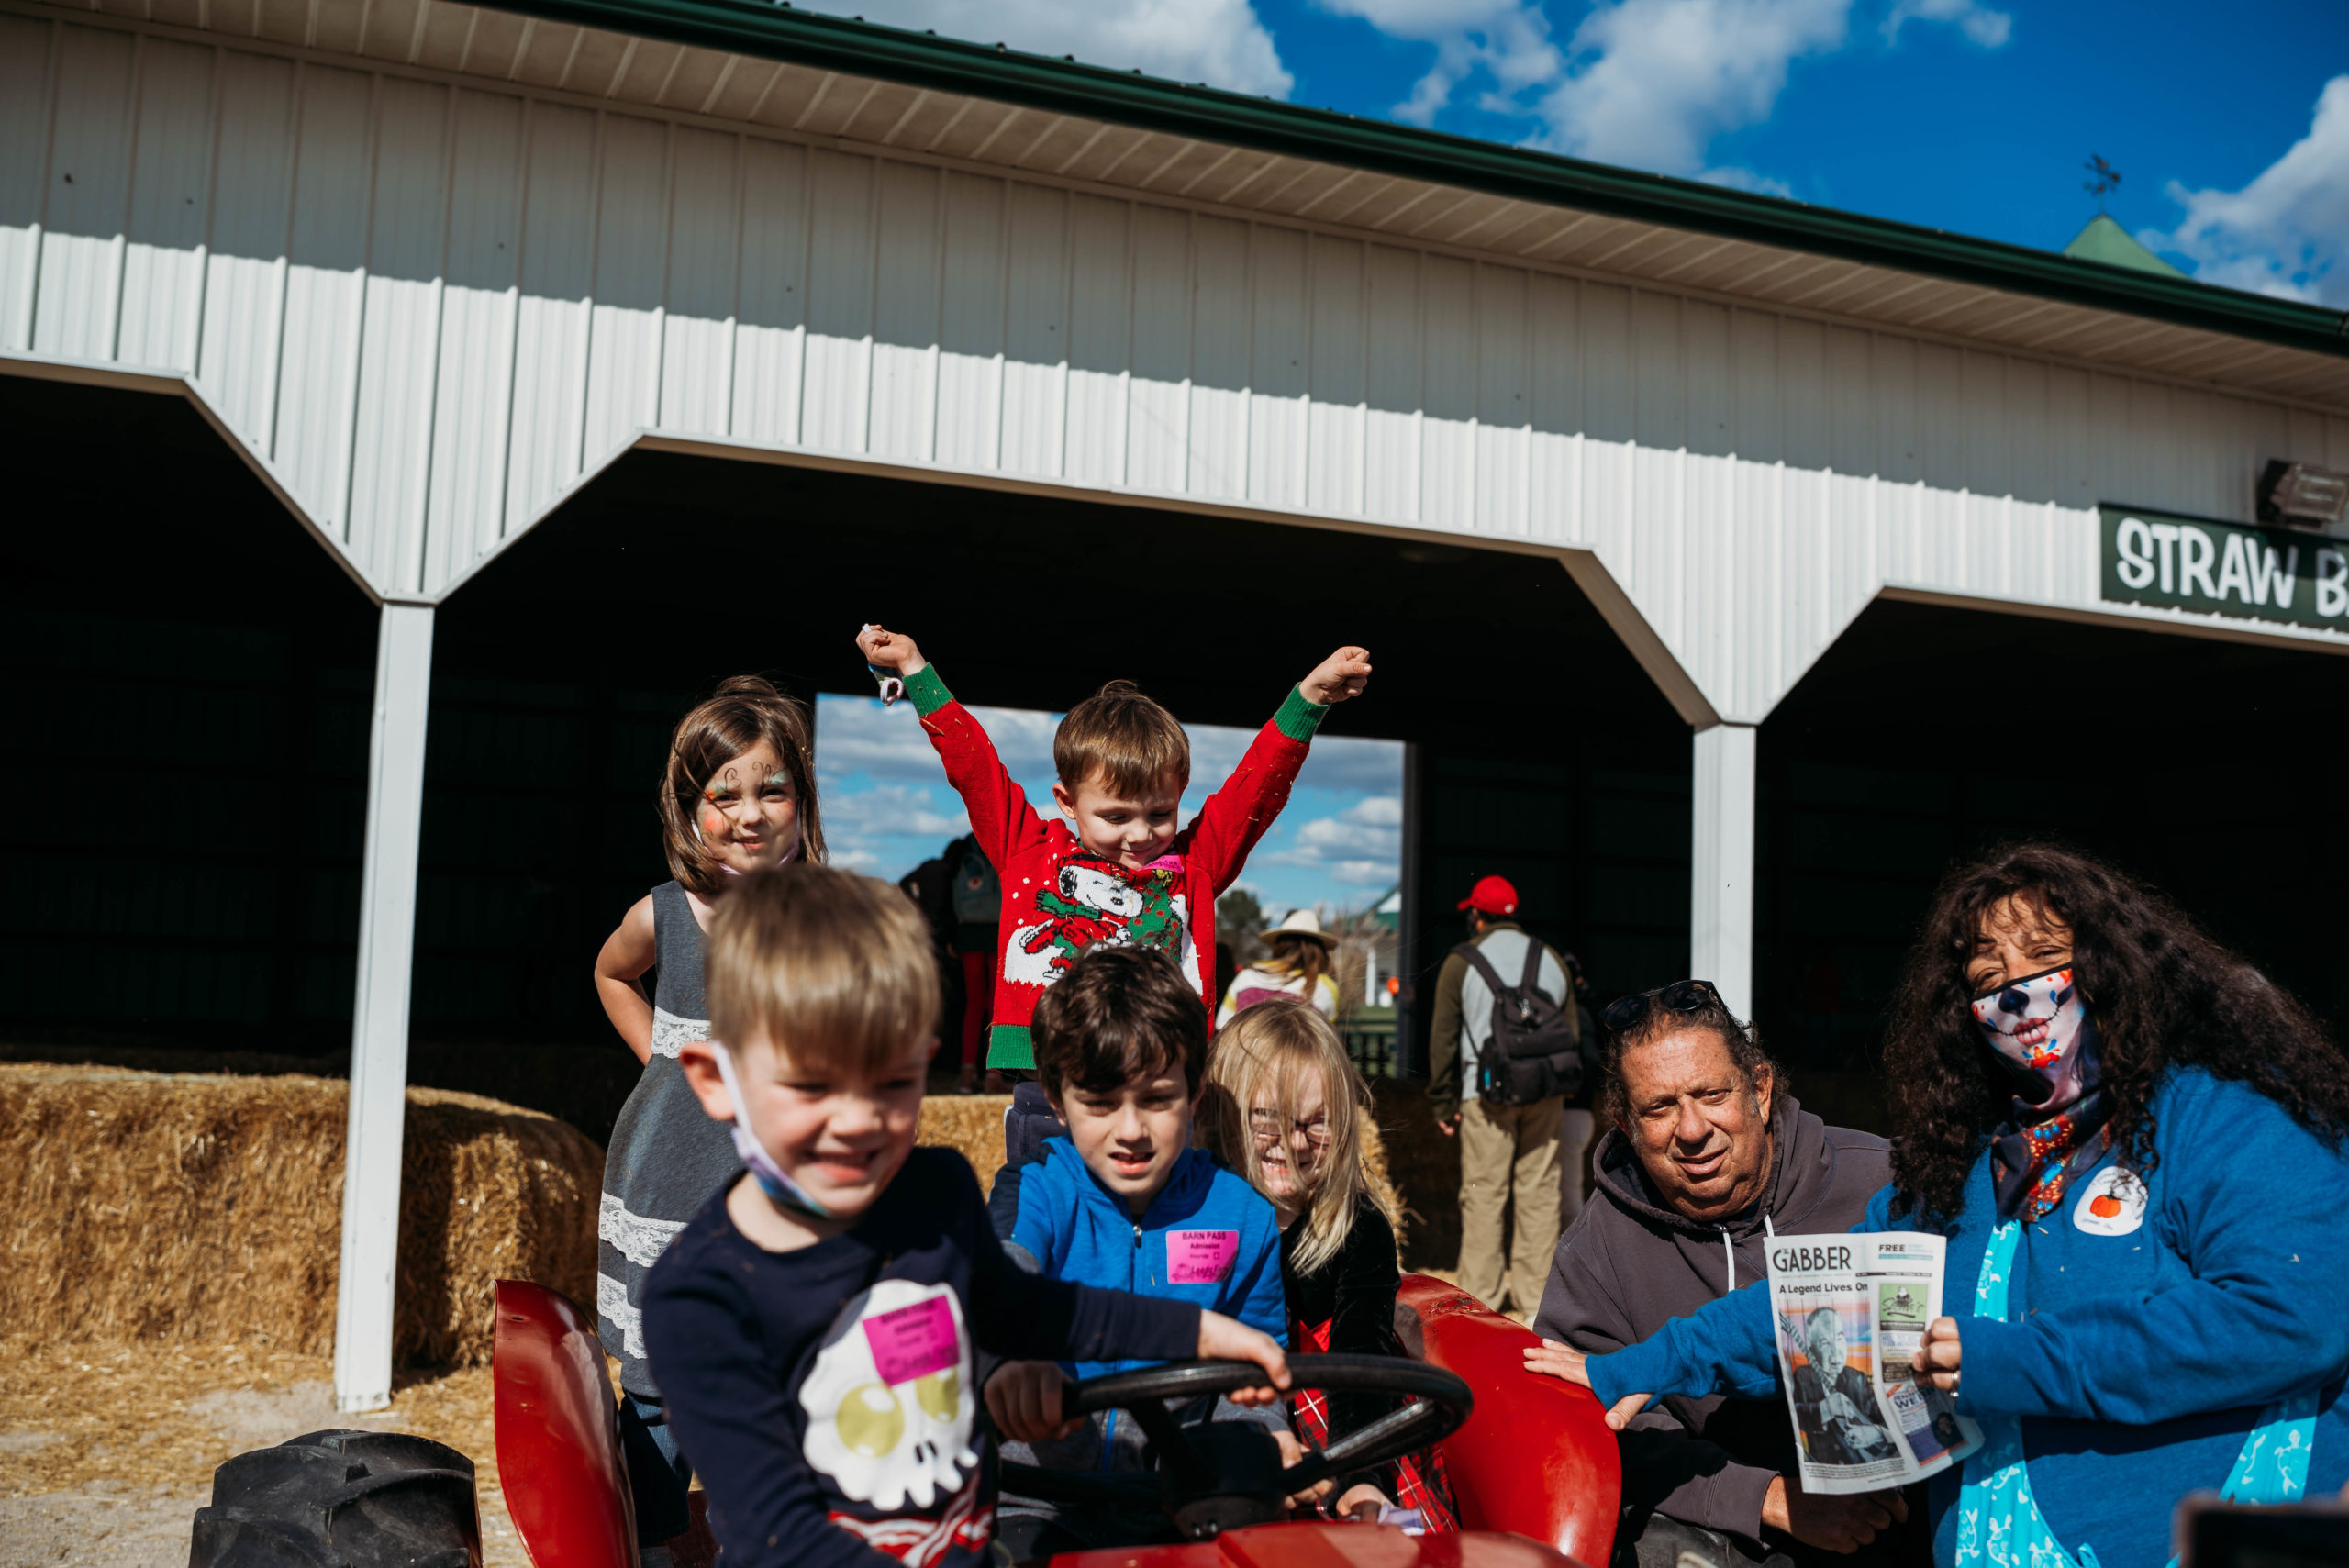 A family group shot of children and adults at a pumpkin patch with a Gabber newspaper